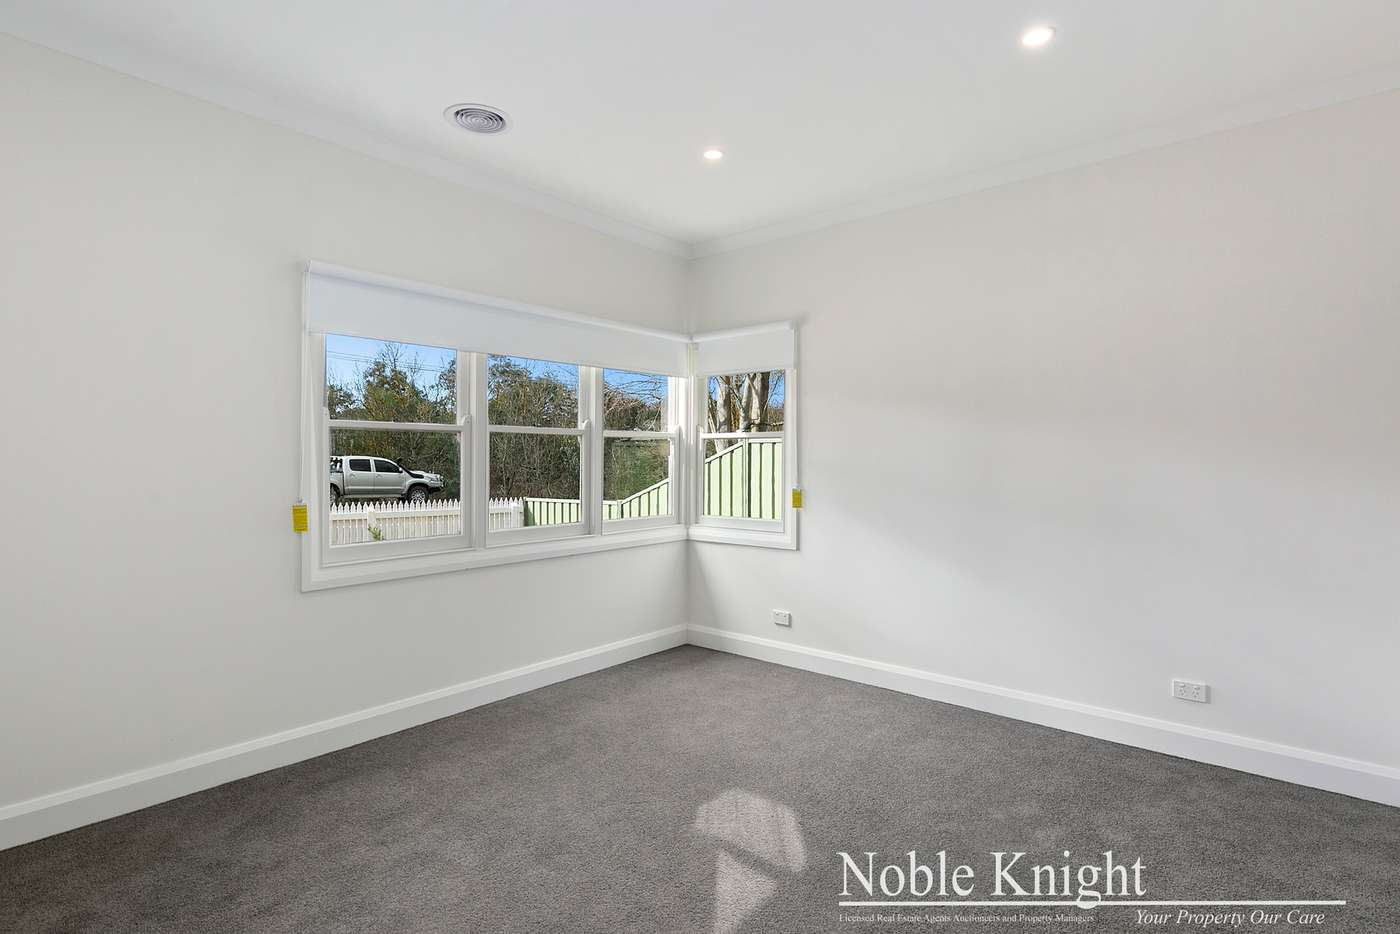 Sixth view of Homely house listing, 2 Miller Street, Yea VIC 3717